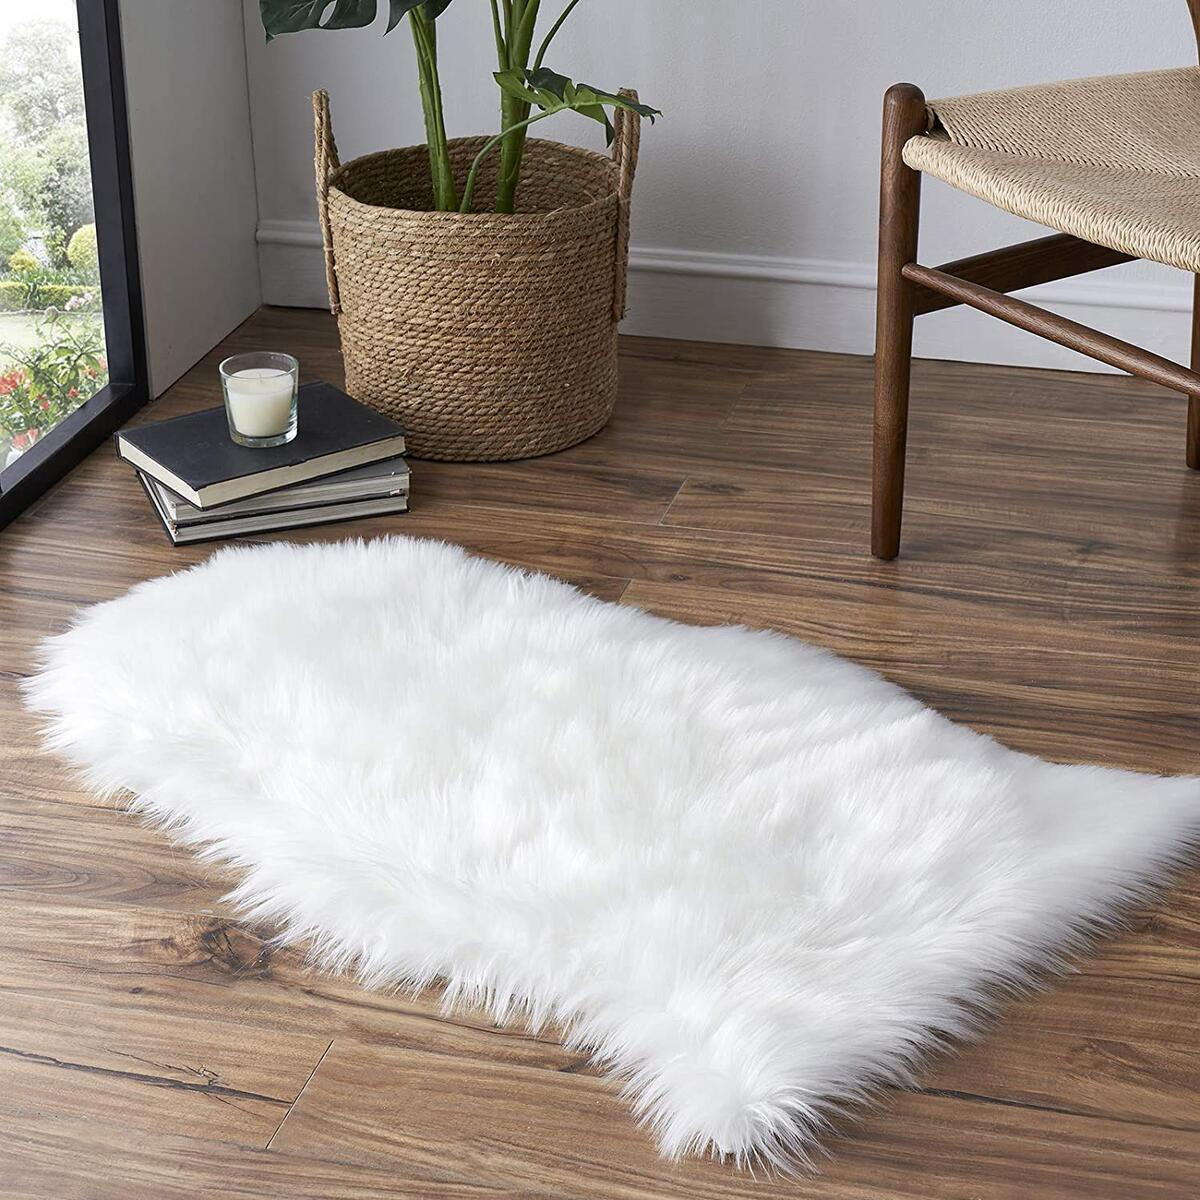 Tangsoo Soft Faux Fur Area Rug White Small Fluffy Rug Furry Chair Cover Seat Pad Fuzzy Carpet for Bedroom Floor Sofa Kids Room 2x3 Feet (White, Sheepskin Shape)